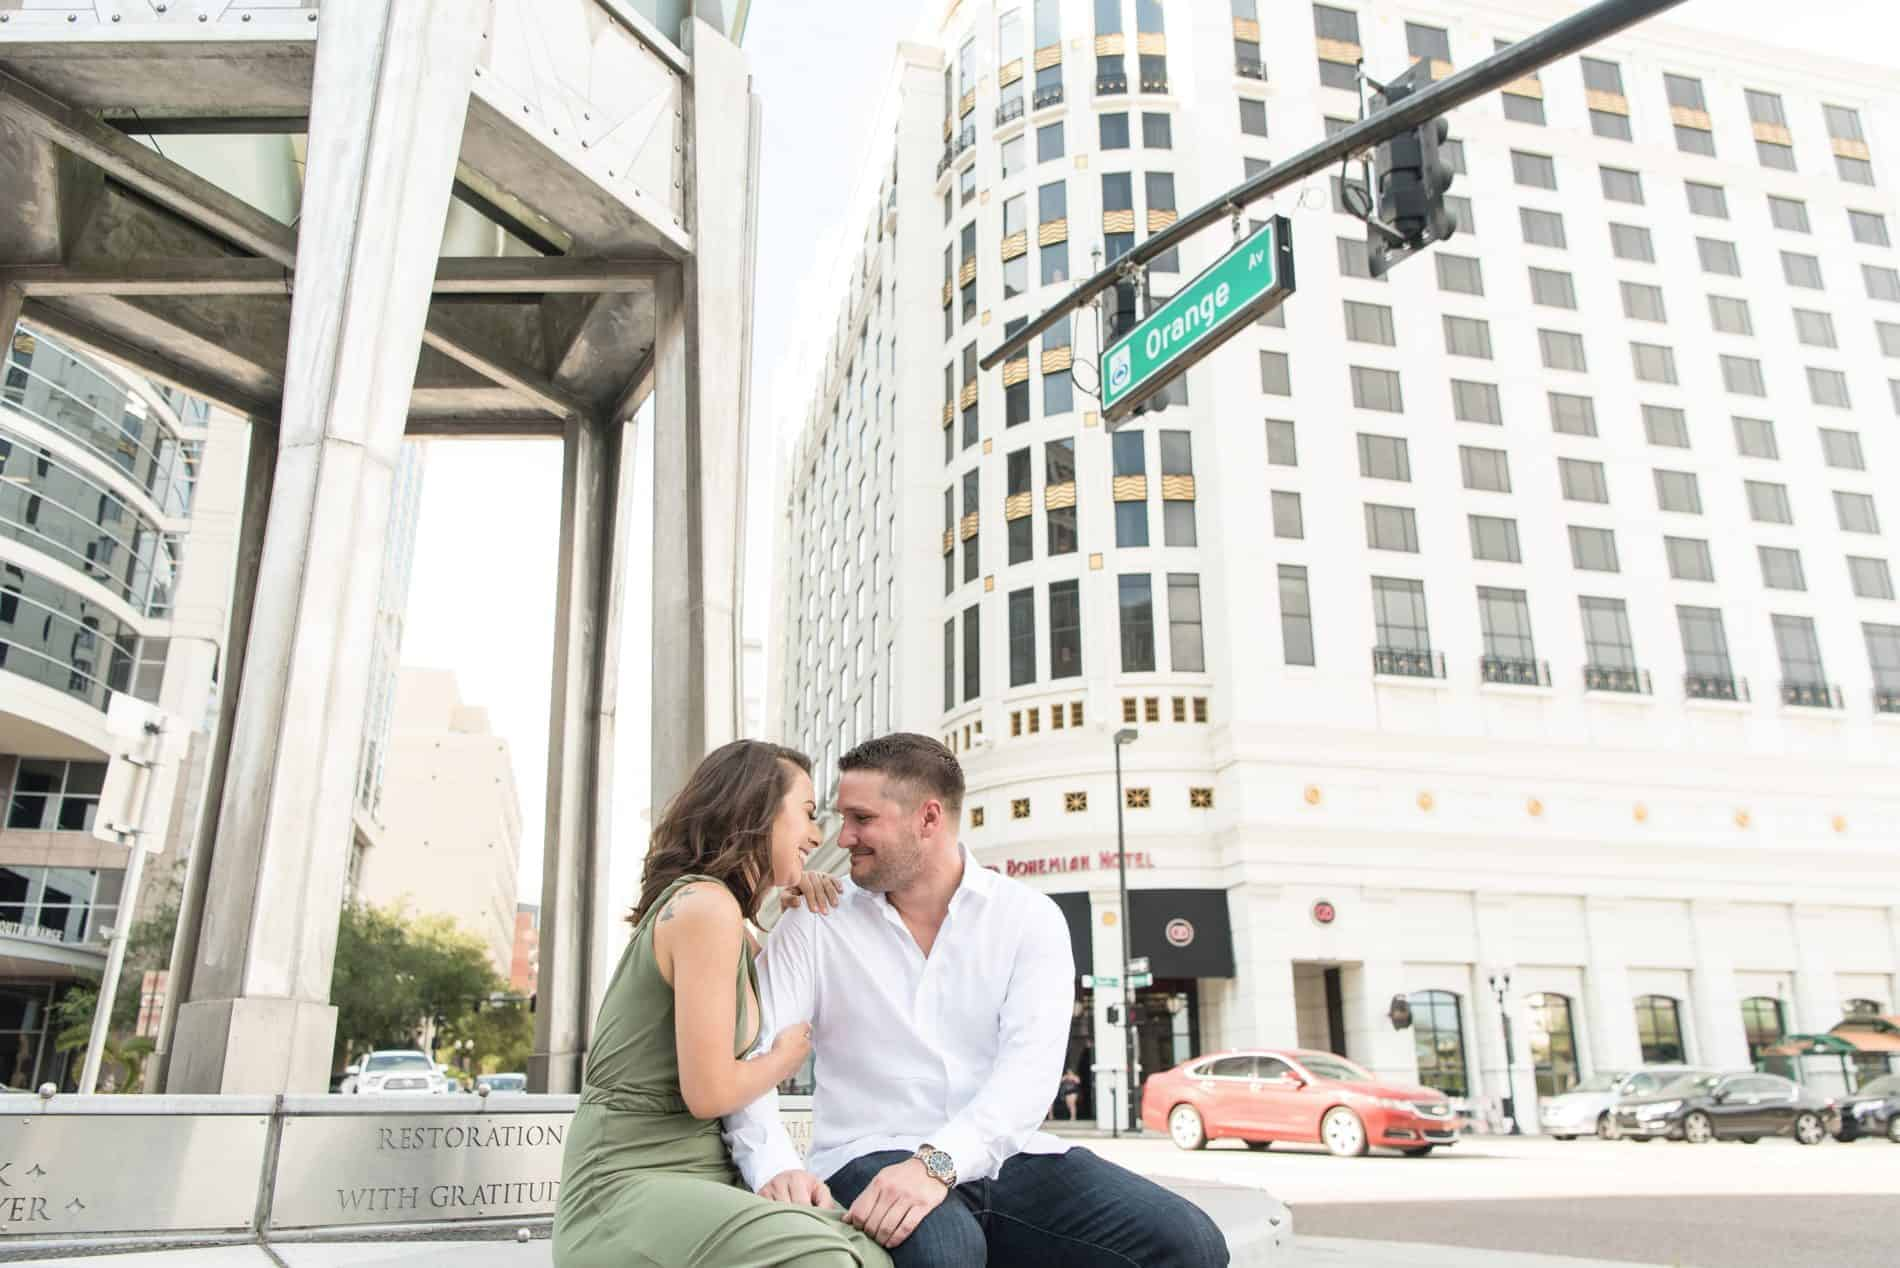 Engaged Couple share a moment near the Grand Bohemian Hotel